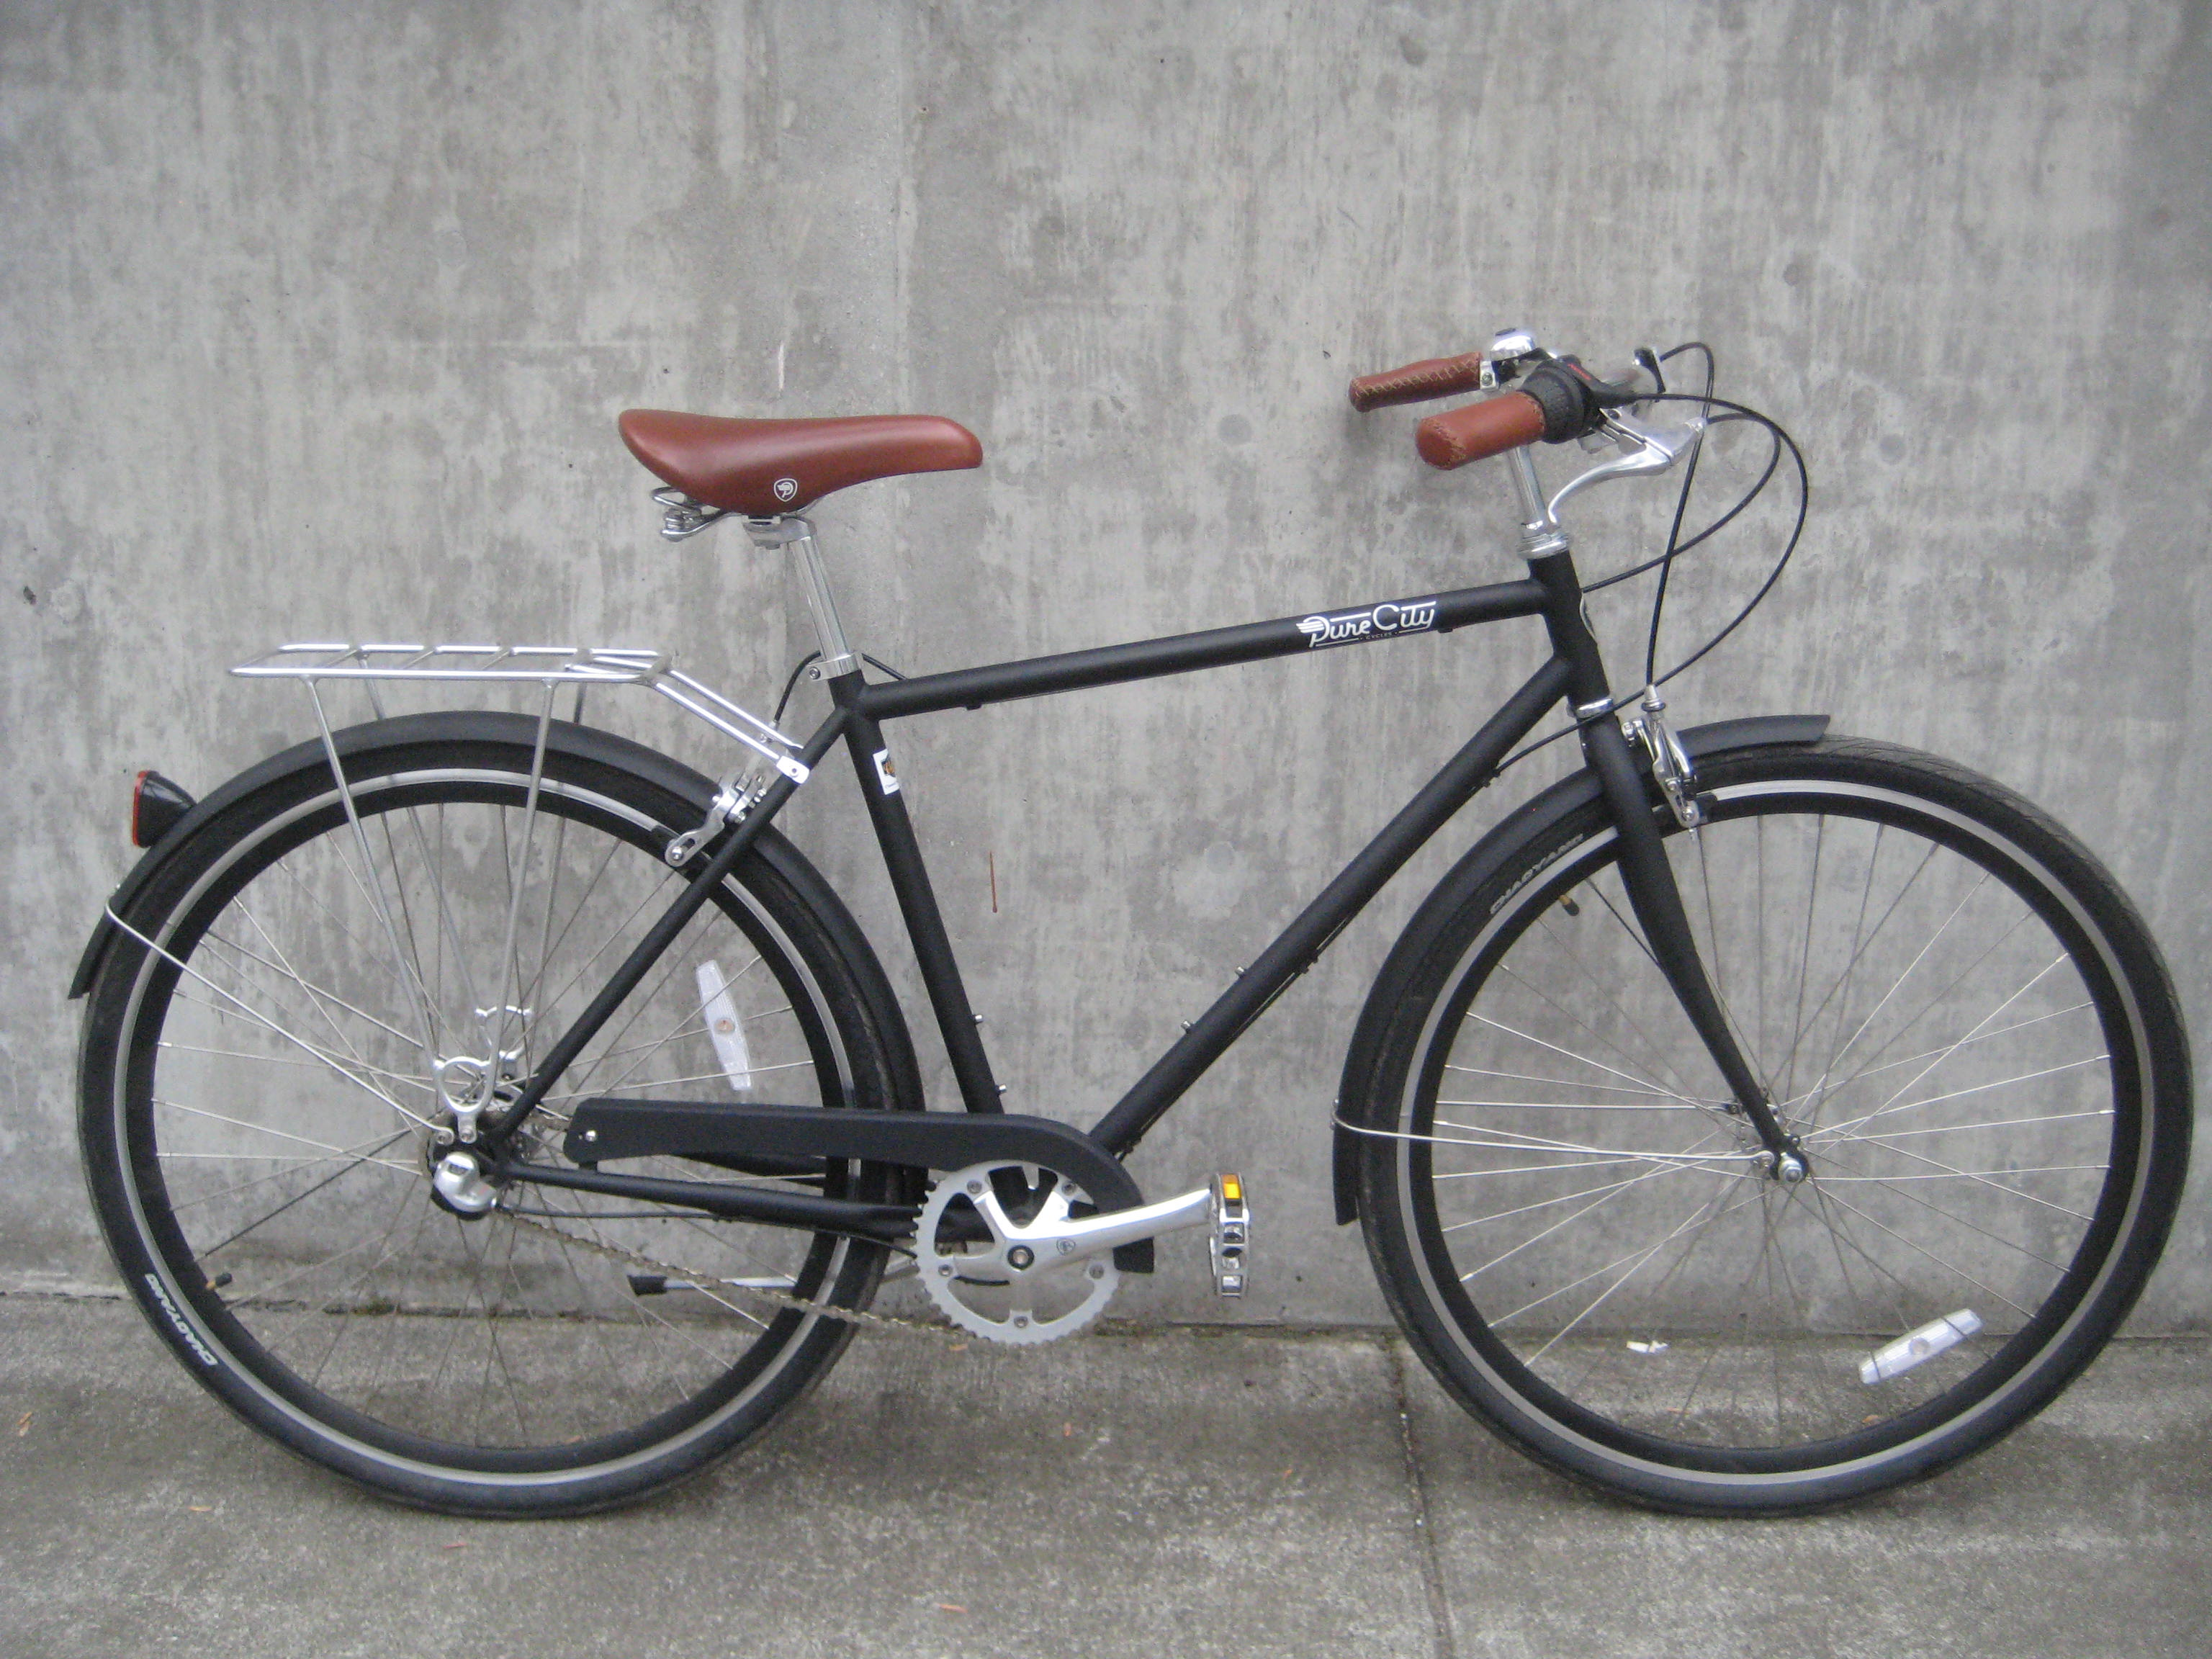 cbe08c1a228 Specialty | Classic Cycle Bainbridge Island Kitsap County